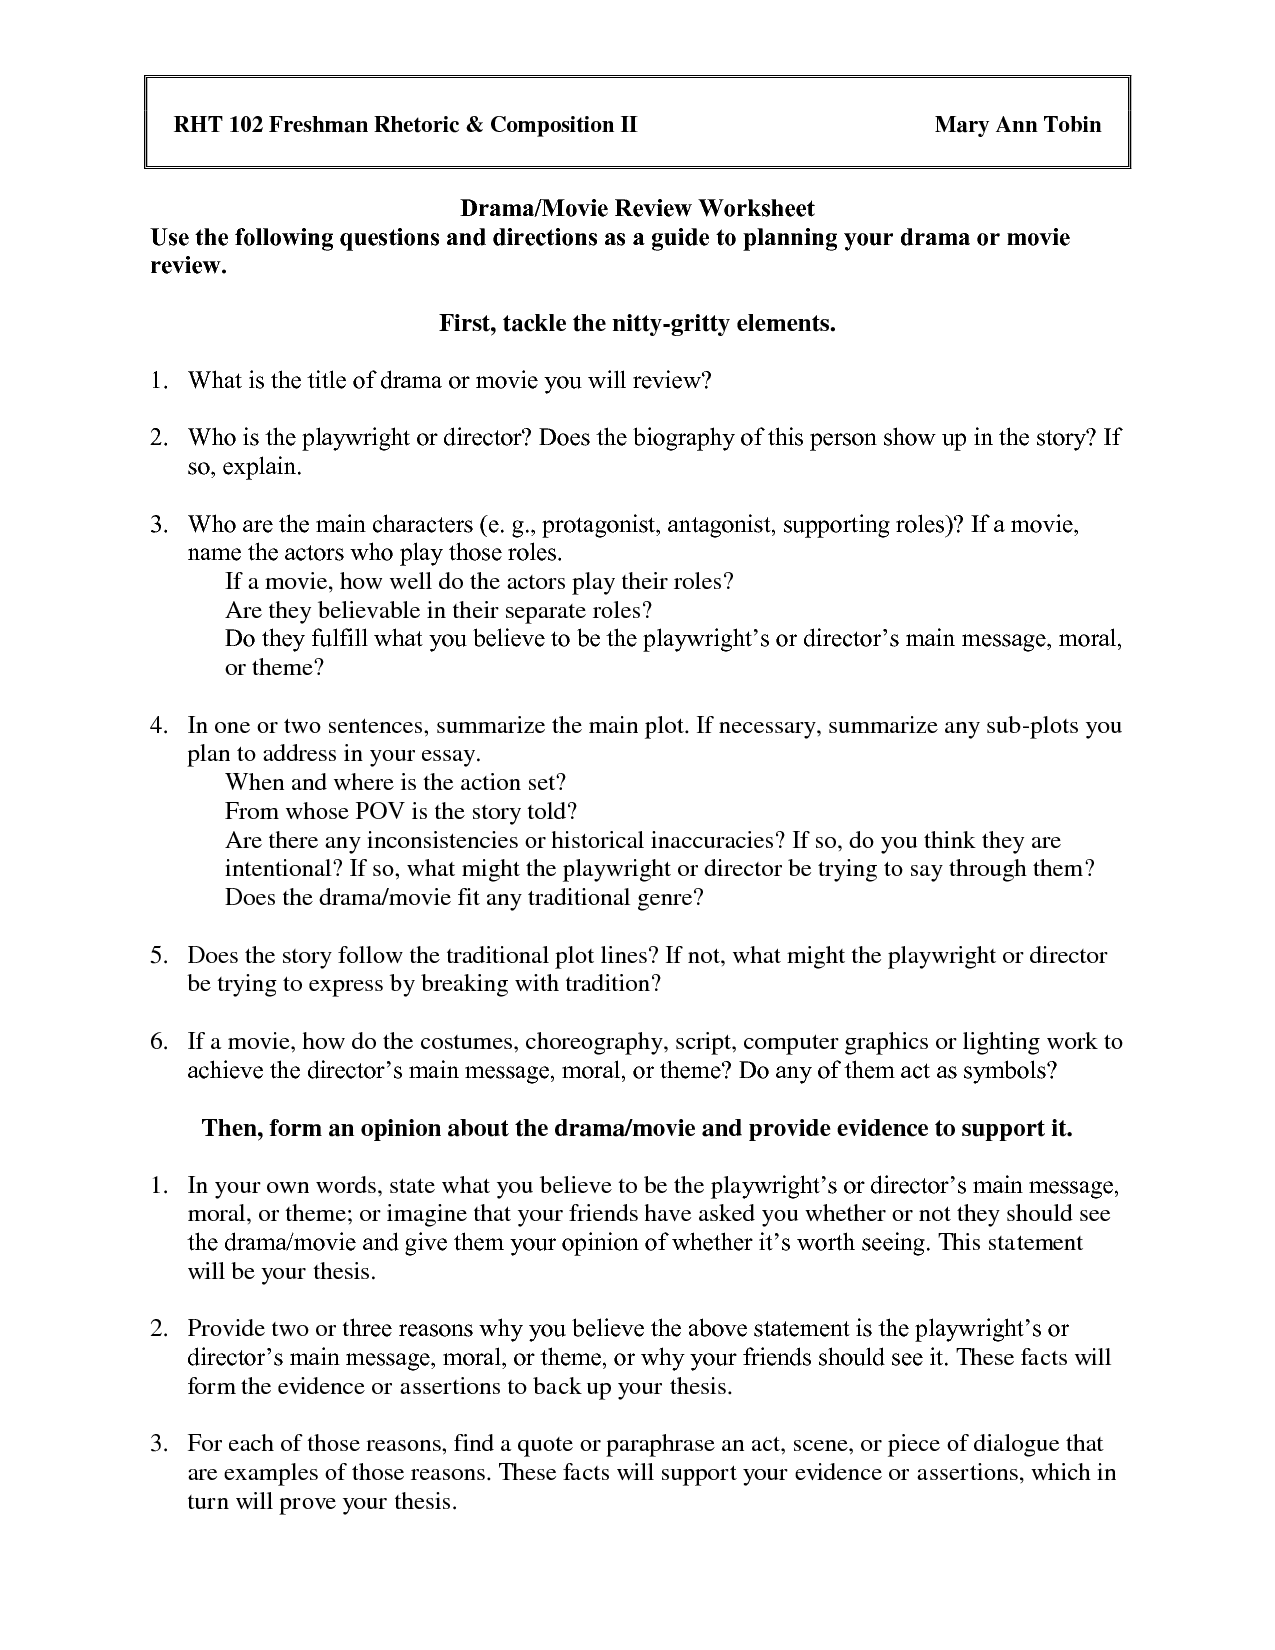 Drama Class Worksheets   Printable Worksheets And Activities